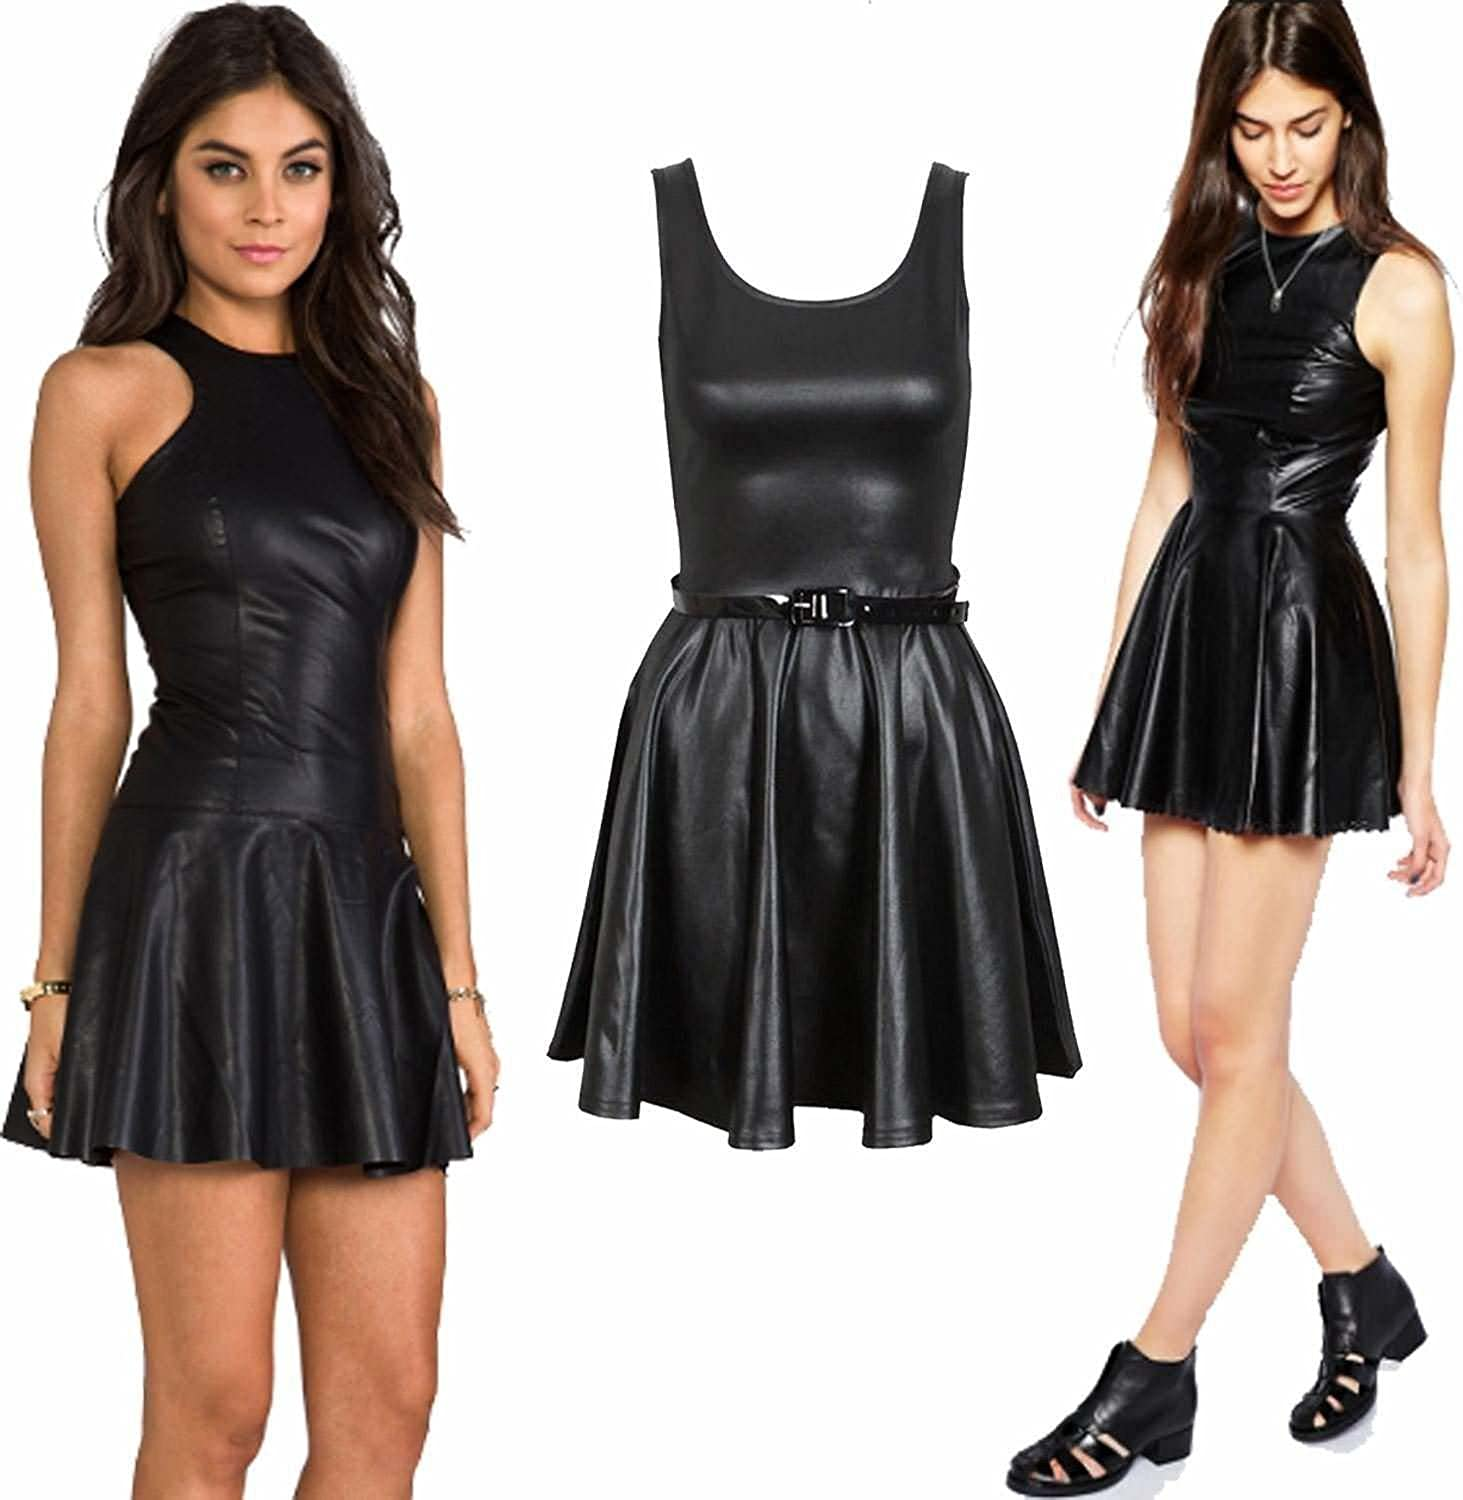 Prettymake Womens Wet Look PVC Belted Plus Size Flared Celebrity Skater Dress 8-26